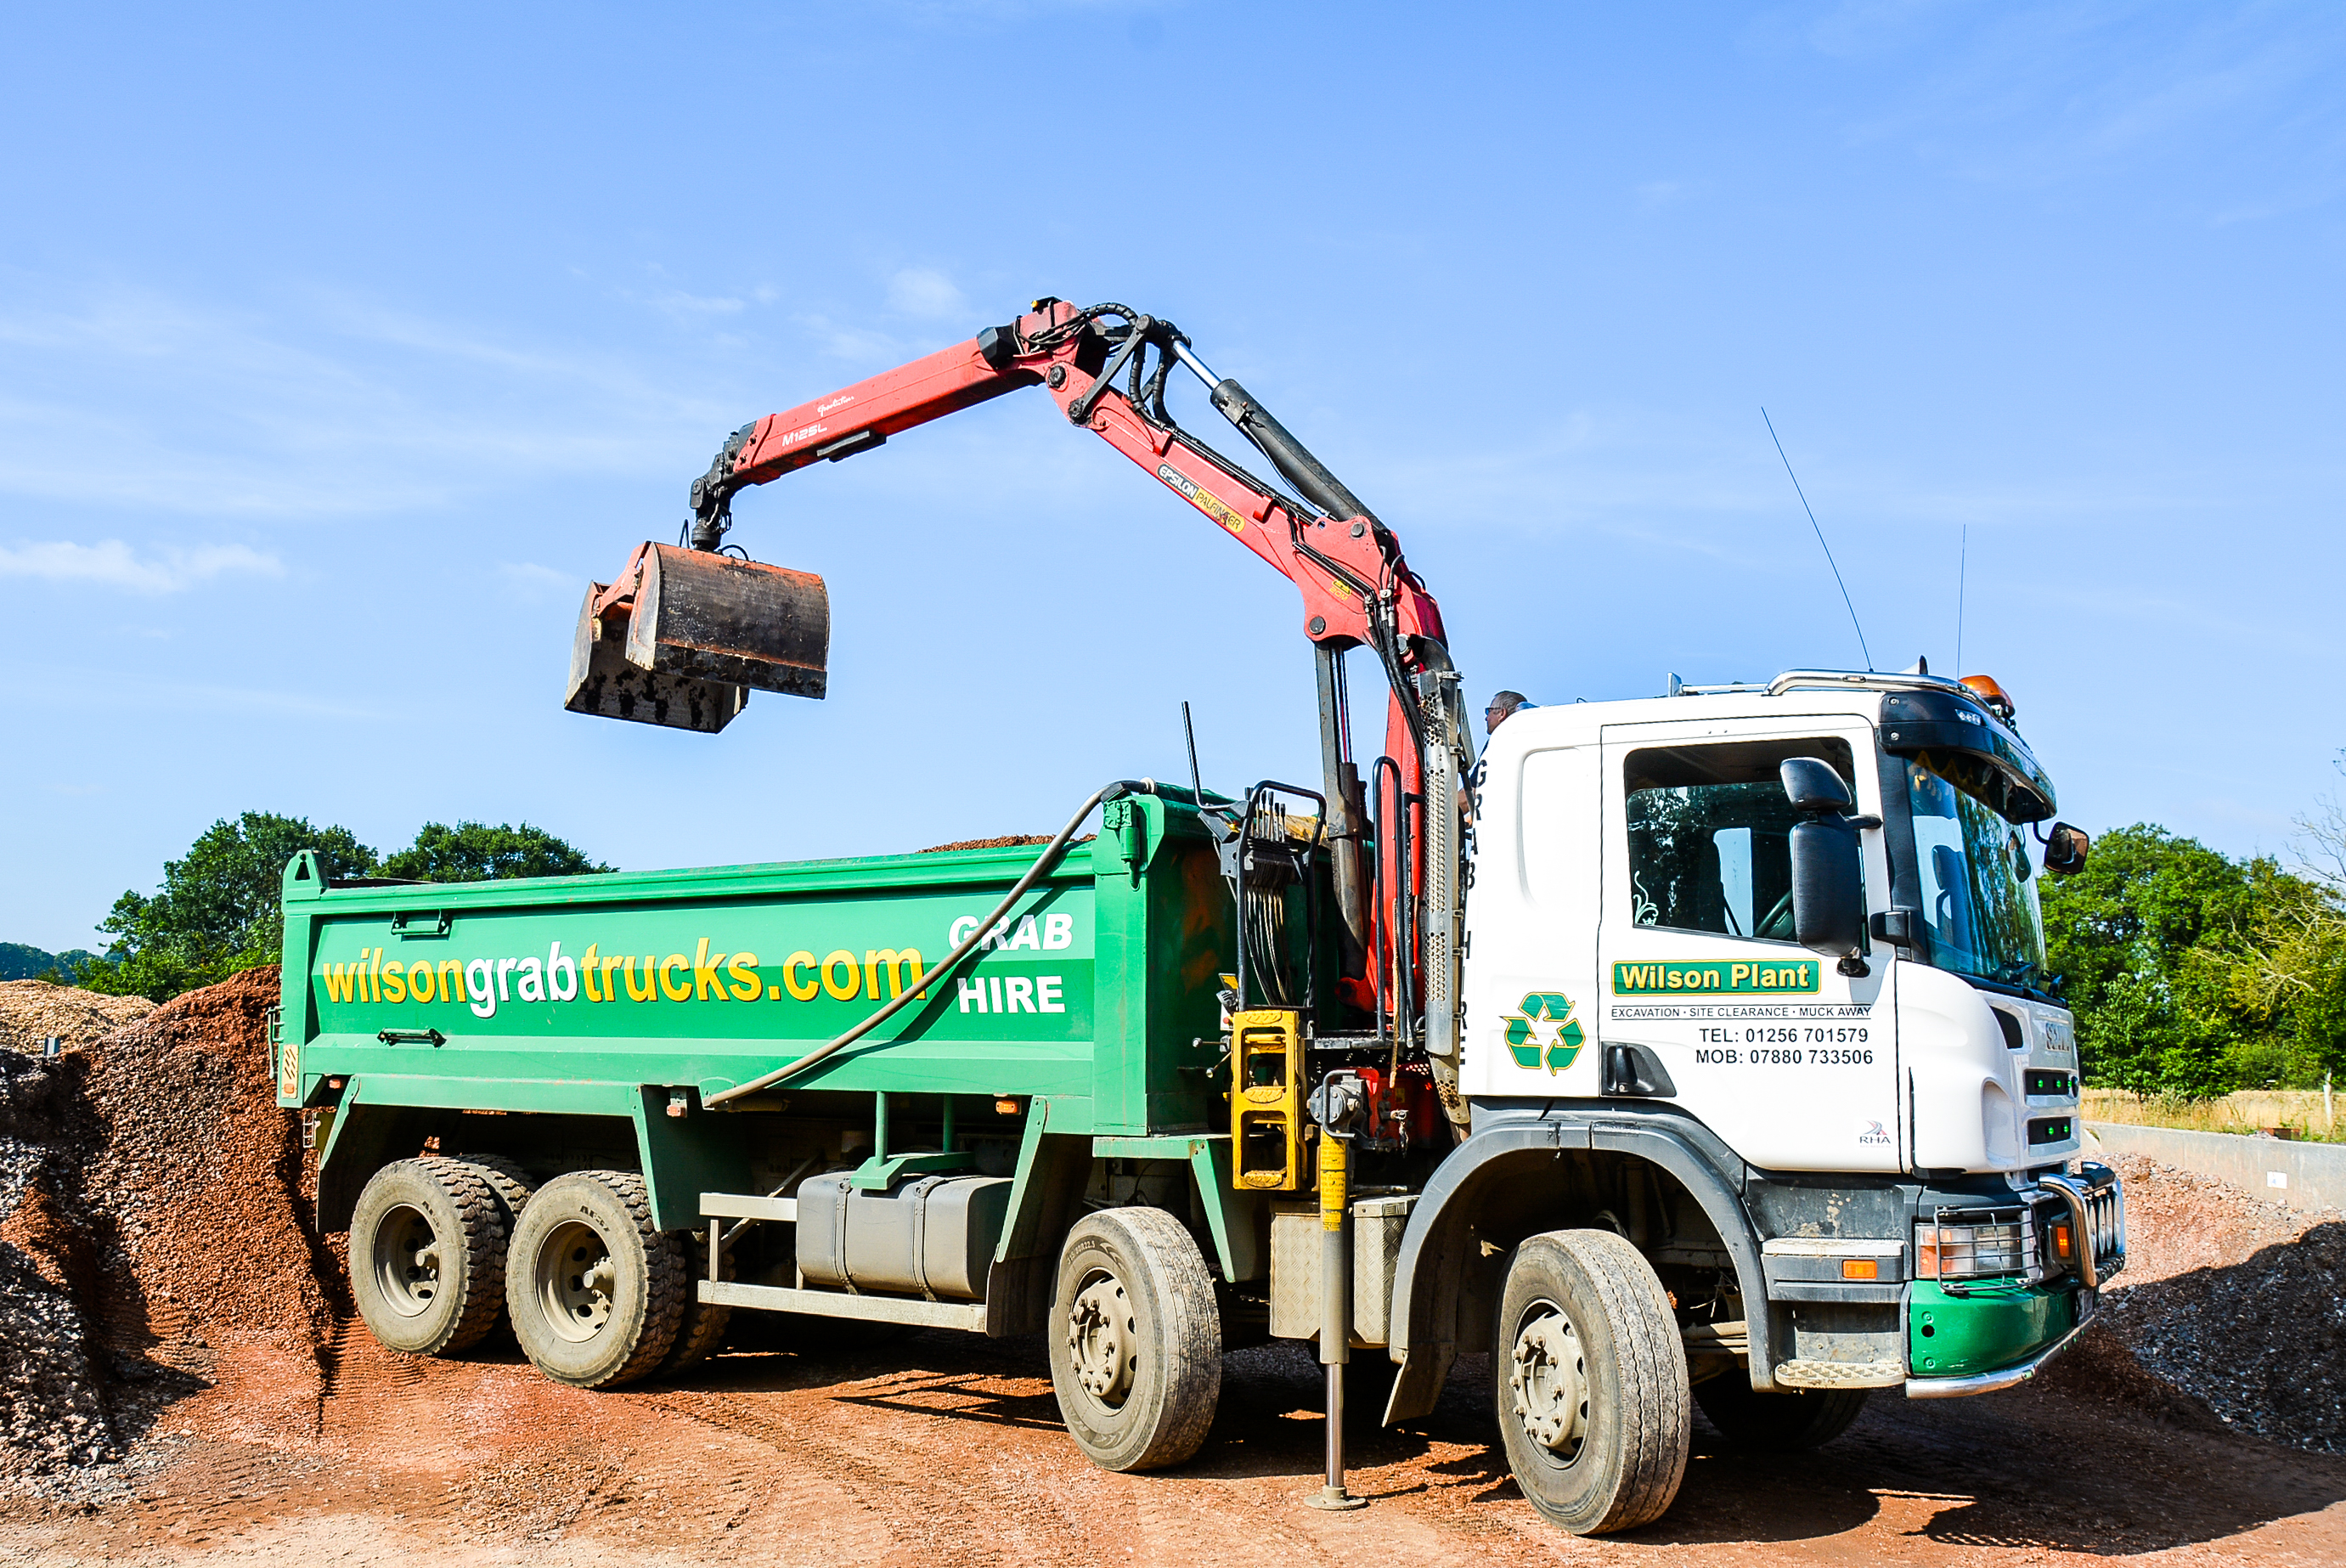 Wilson Plan will provide you with only the best plant equipment when you choose our plant hire services. Click to find out more.